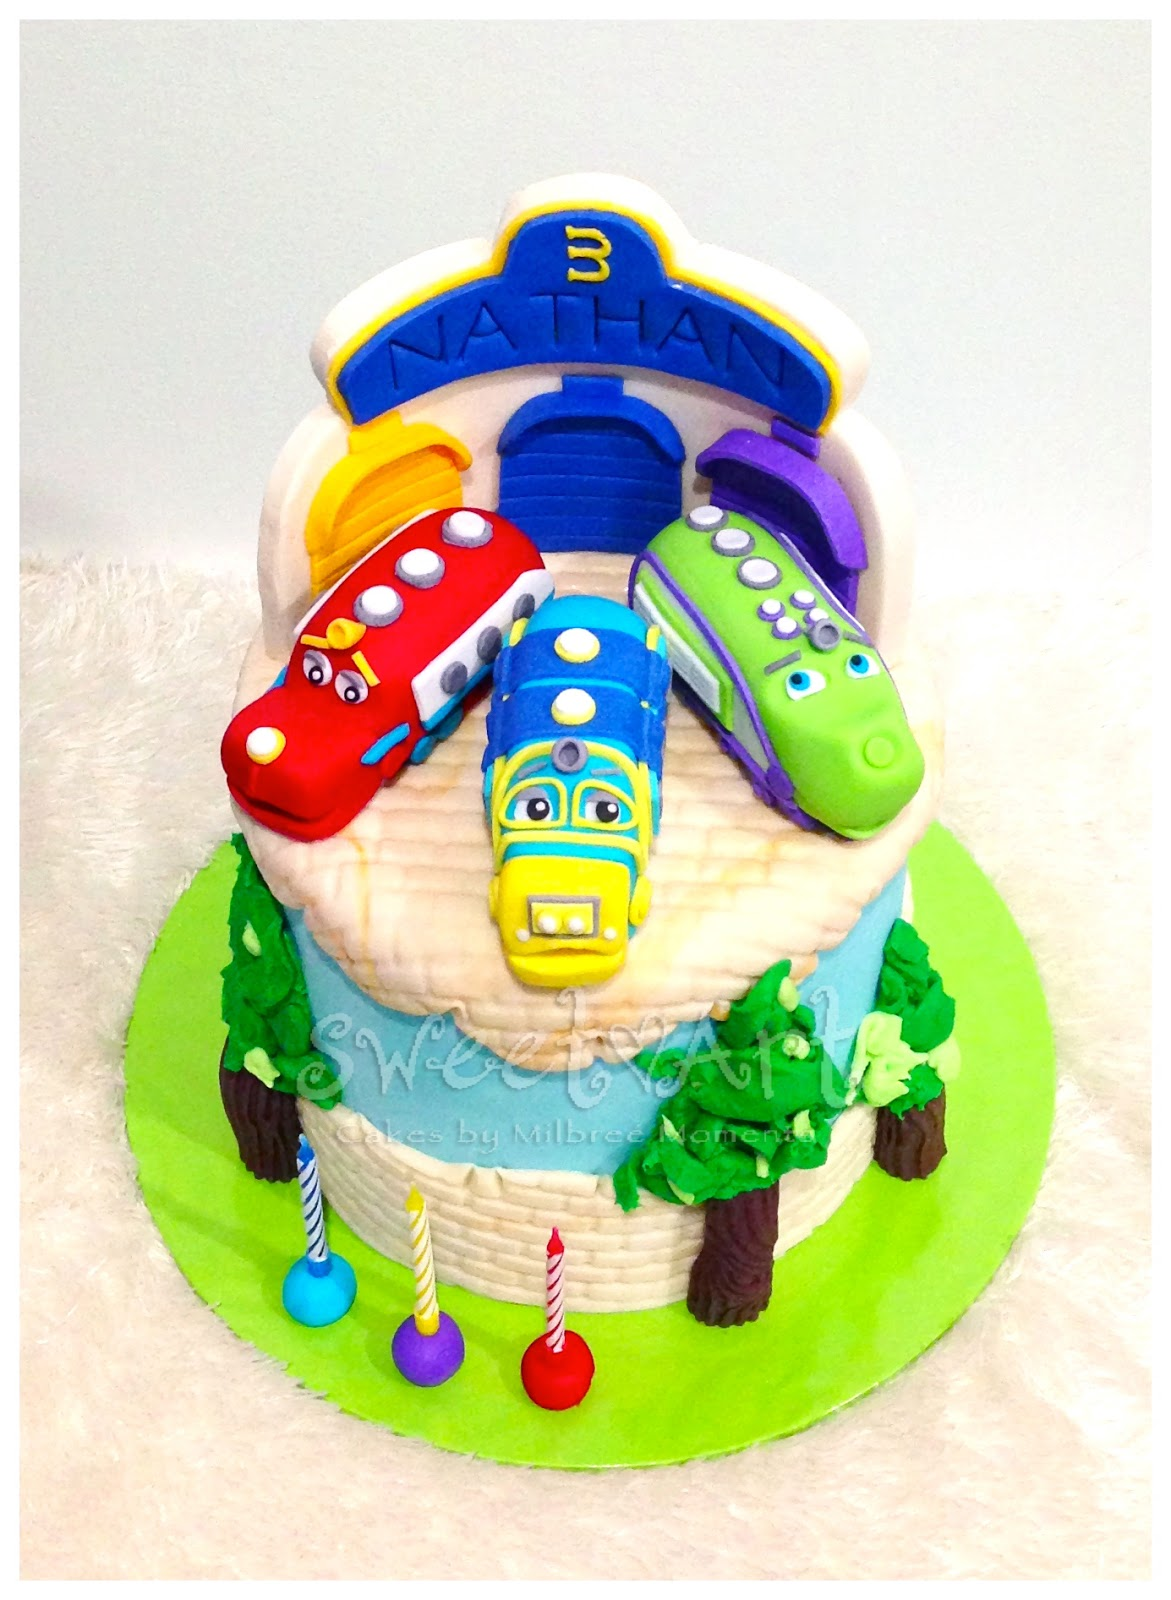 Sweet Art Cakes By Milbreé Moments July - Chuggington birthday cake